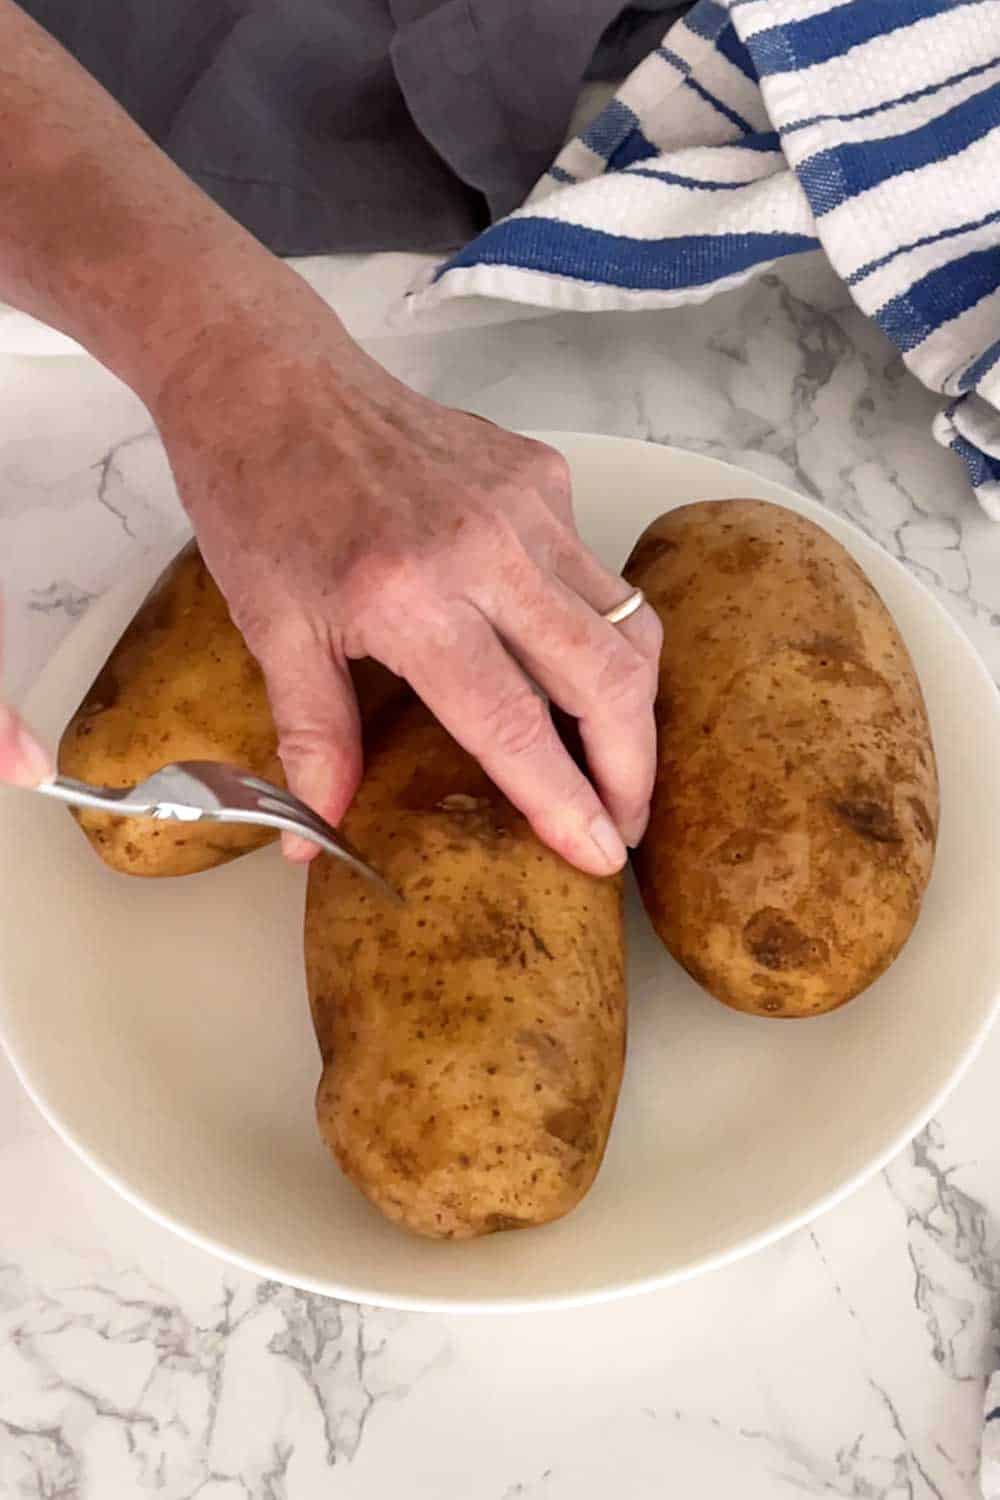 Piercing the potatoes with a fork.